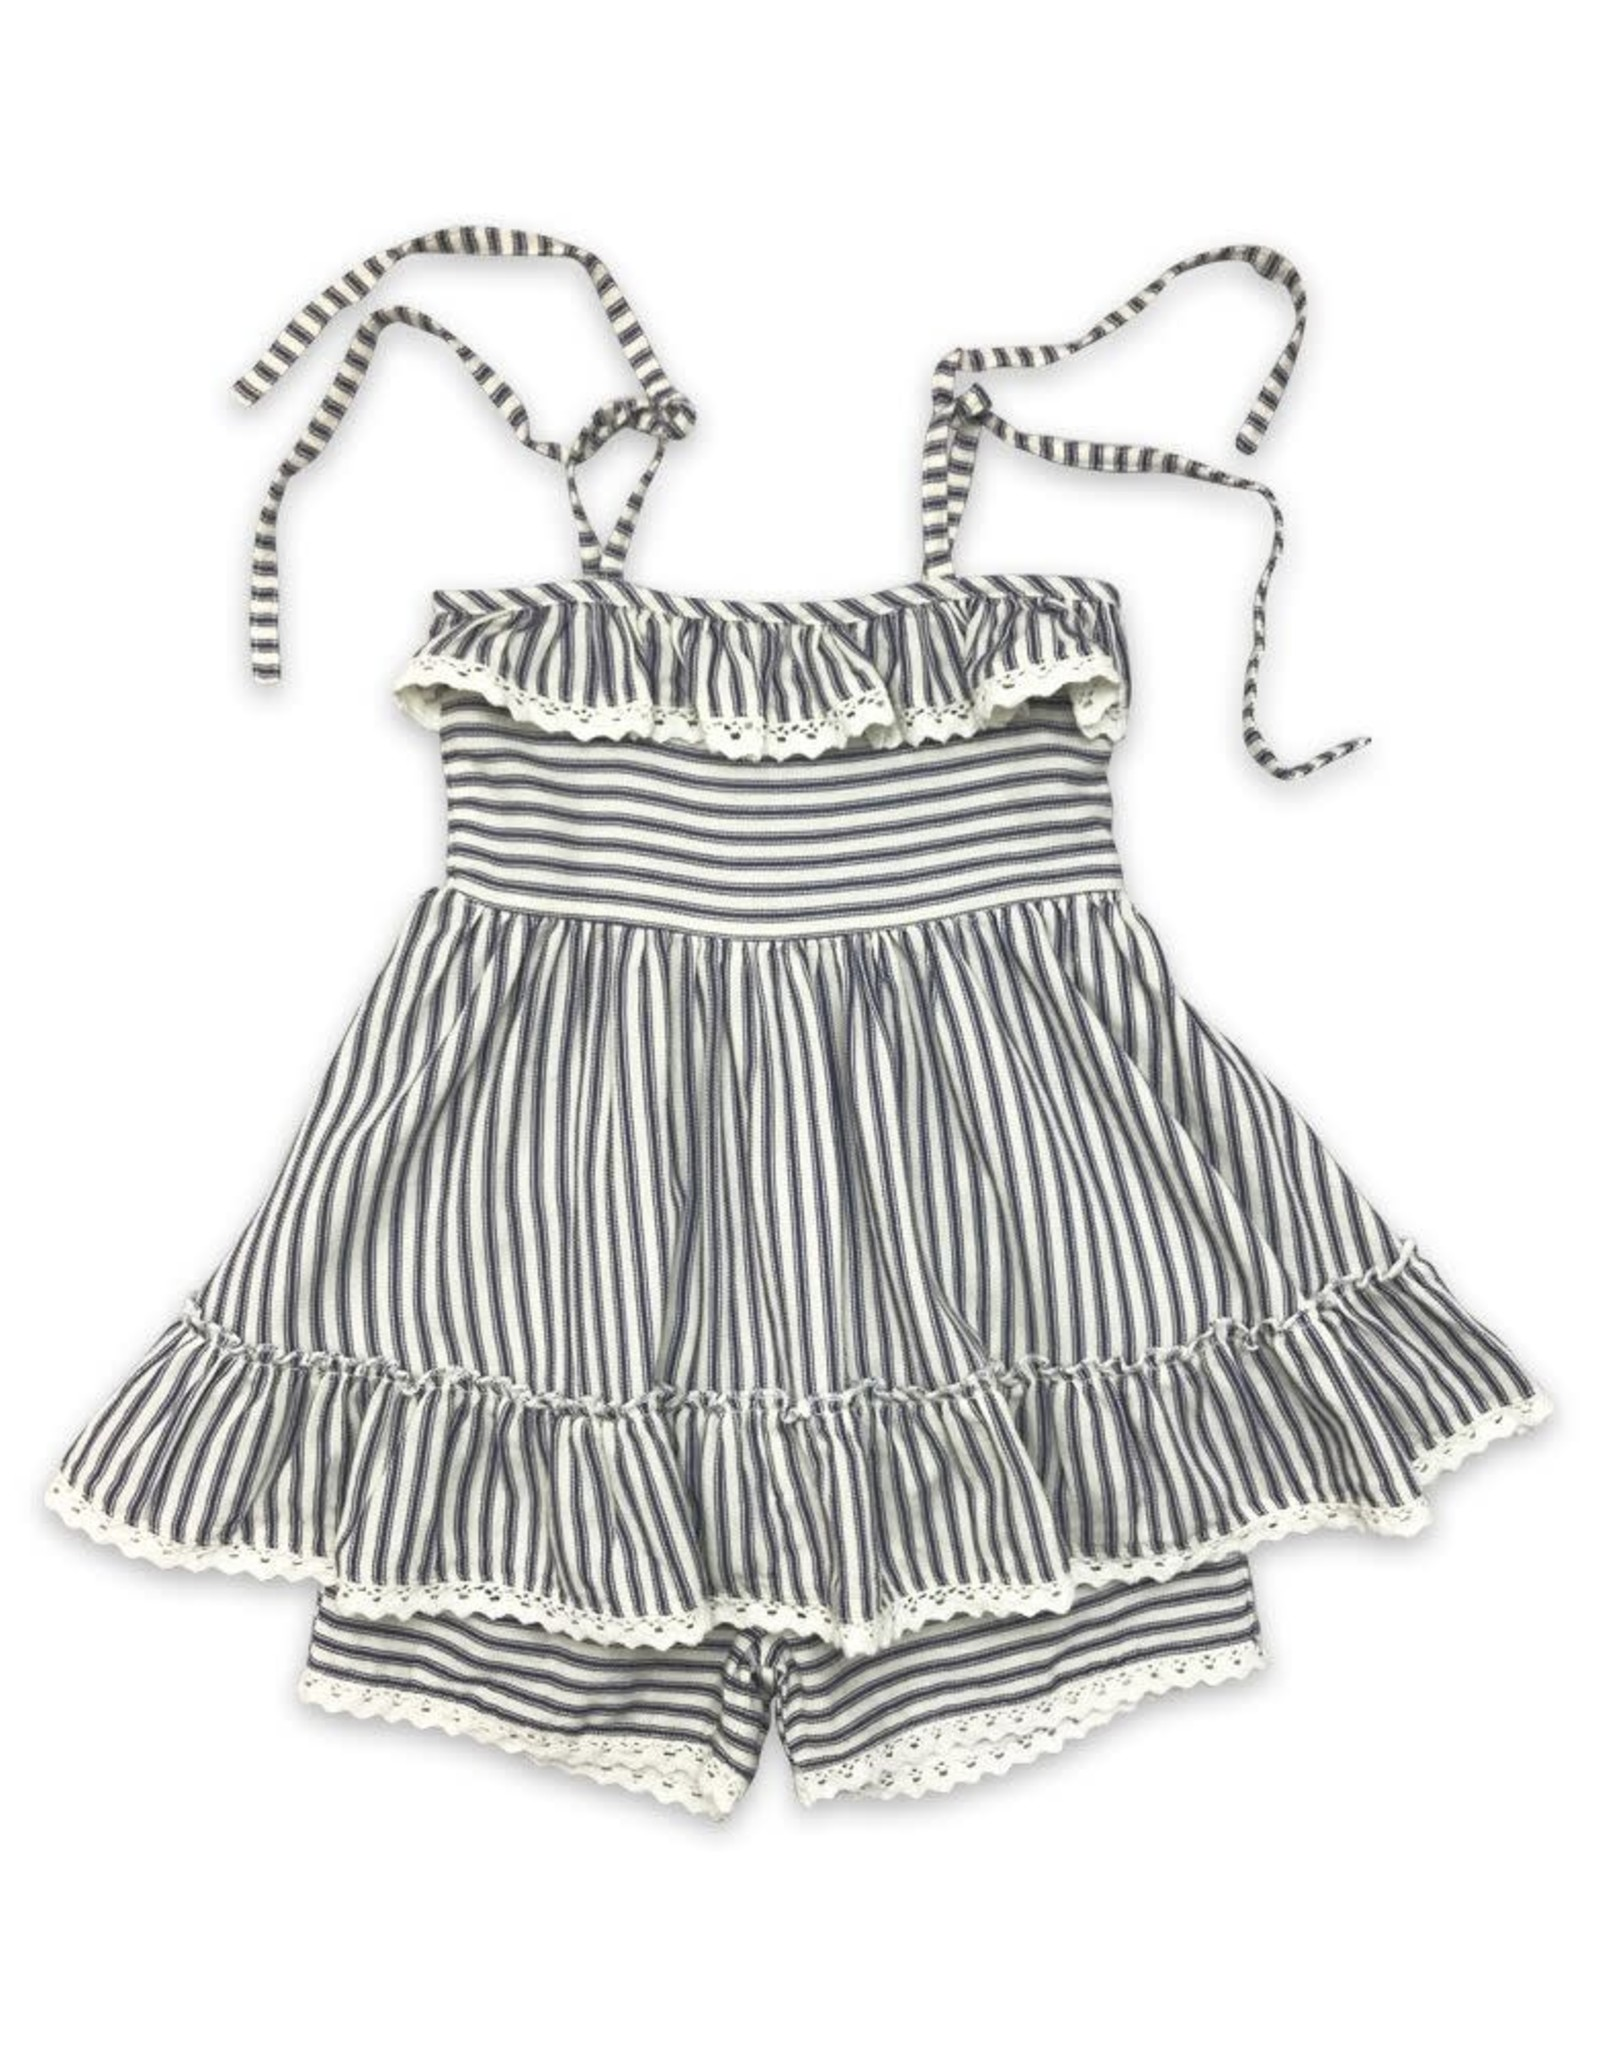 Little Prim Sydney Set in Ticking Stripe